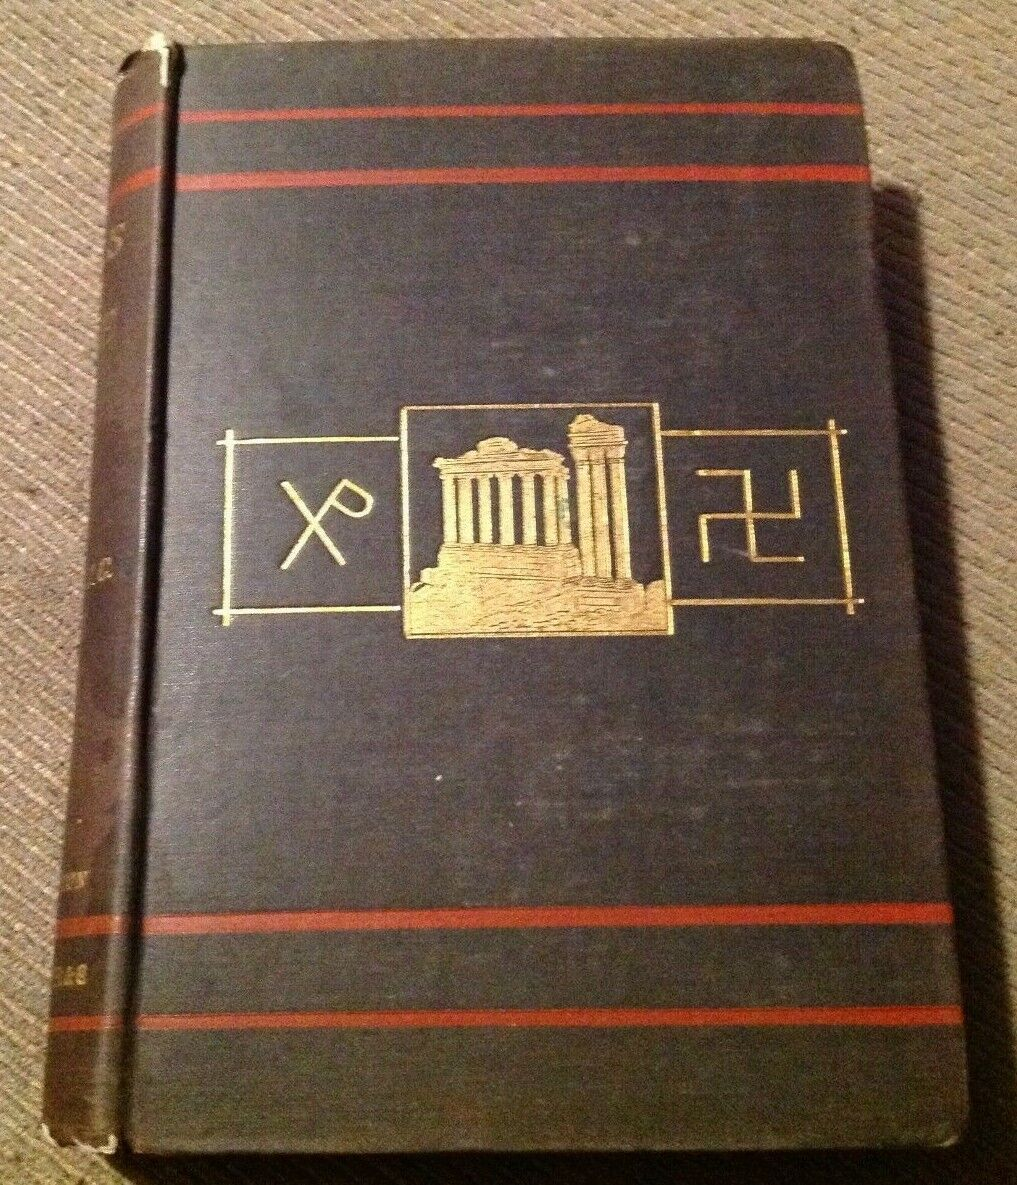 Antique 1878 Illustrated Book WALKS IN ROME Vol. I By Augustus J.C. Hare - $15.00